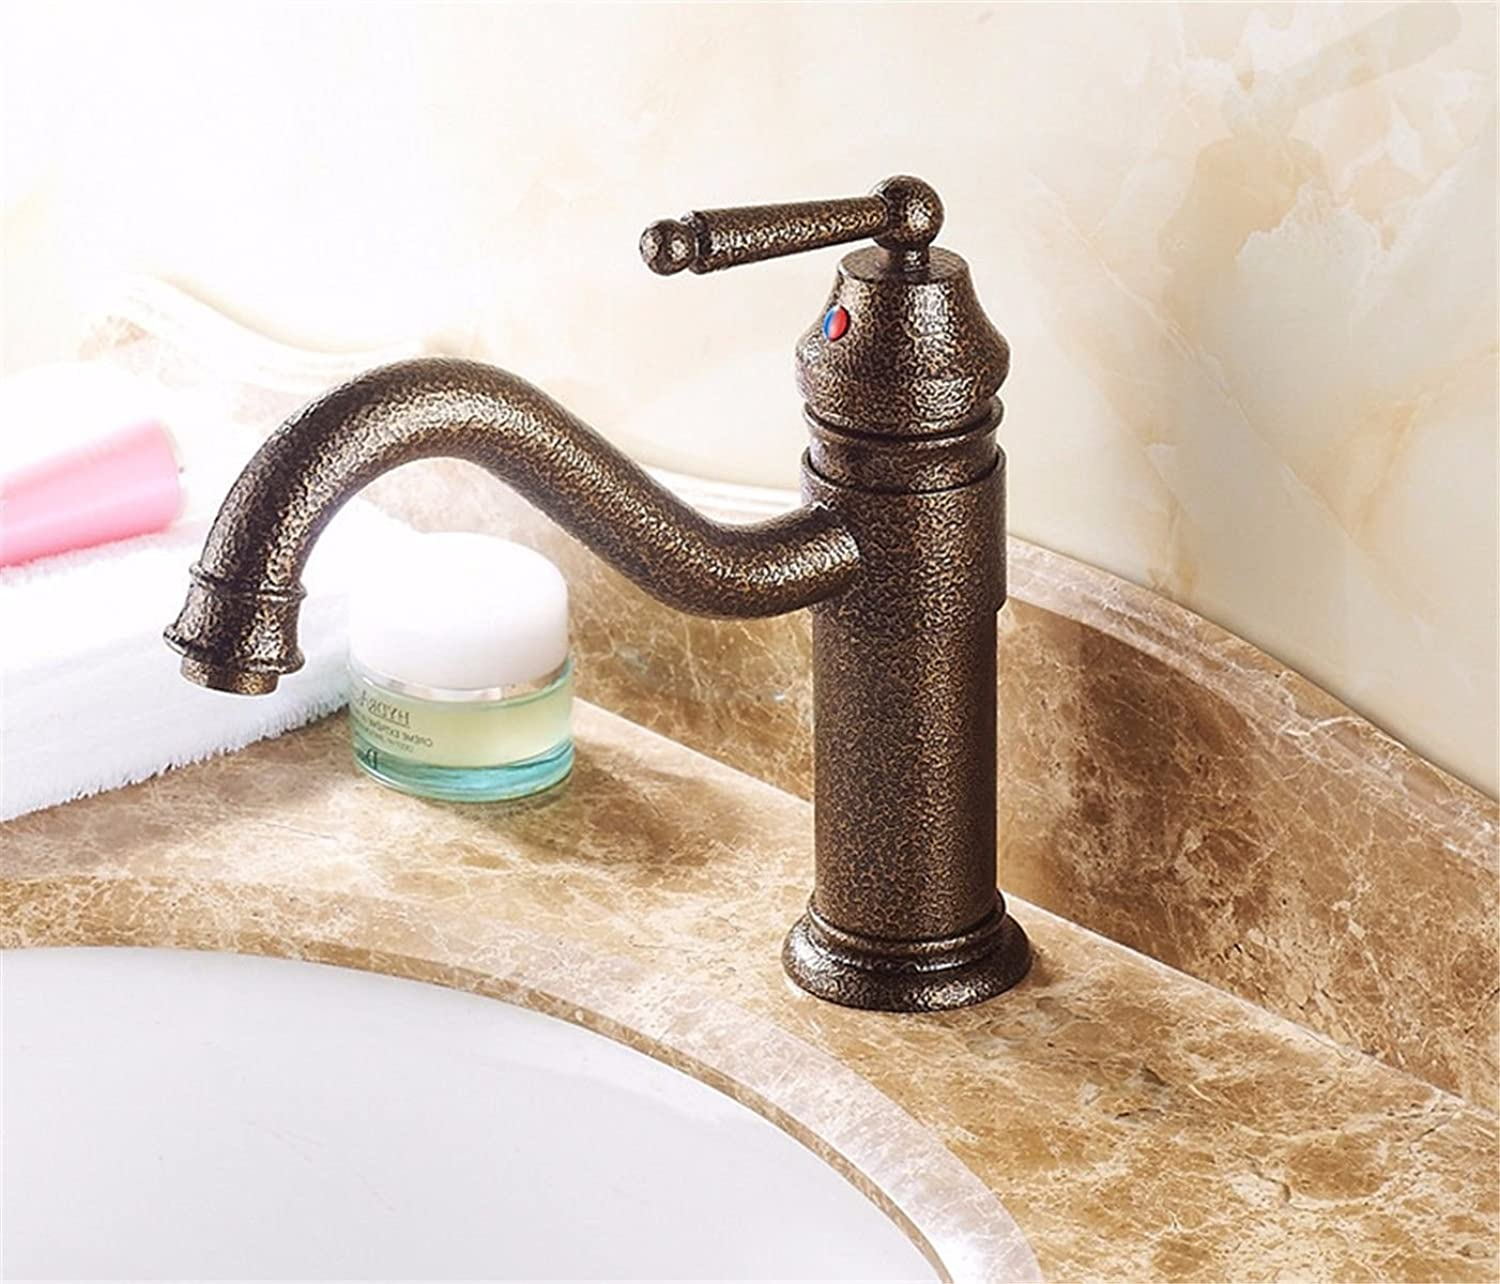 Hlluya Professional Sink Mixer Tap Kitchen Faucet Antique hot & cold water single hole single handle bathroom basin mixer